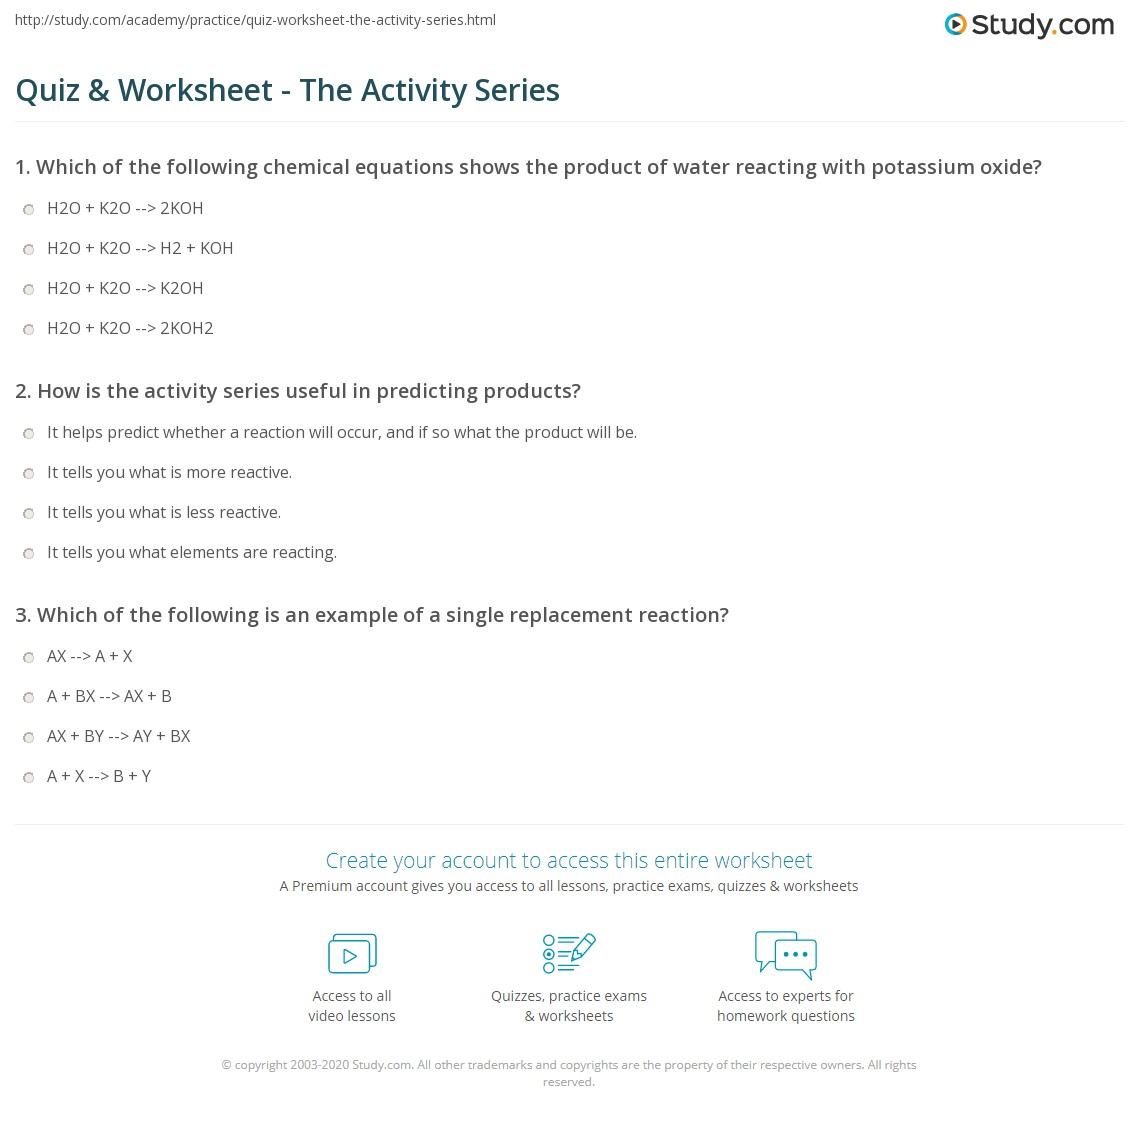 Aldiablosus  Winning Quiz Amp Worksheet  The Activity Series  Studycom With Handsome Print The Activity Series Predicting Products Of Single Displacement Reactions Worksheet With Comely Worksheet On Perimeter And Area For Grade  Also Say It With Dna Worksheet Answers In Addition Holes Worksheets And Spanish Time Worksheet As Well As Preterite Worksheet Additionally Step Six Aa Worksheet From Studycom With Aldiablosus  Handsome Quiz Amp Worksheet  The Activity Series  Studycom With Comely Print The Activity Series Predicting Products Of Single Displacement Reactions Worksheet And Winning Worksheet On Perimeter And Area For Grade  Also Say It With Dna Worksheet Answers In Addition Holes Worksheets From Studycom